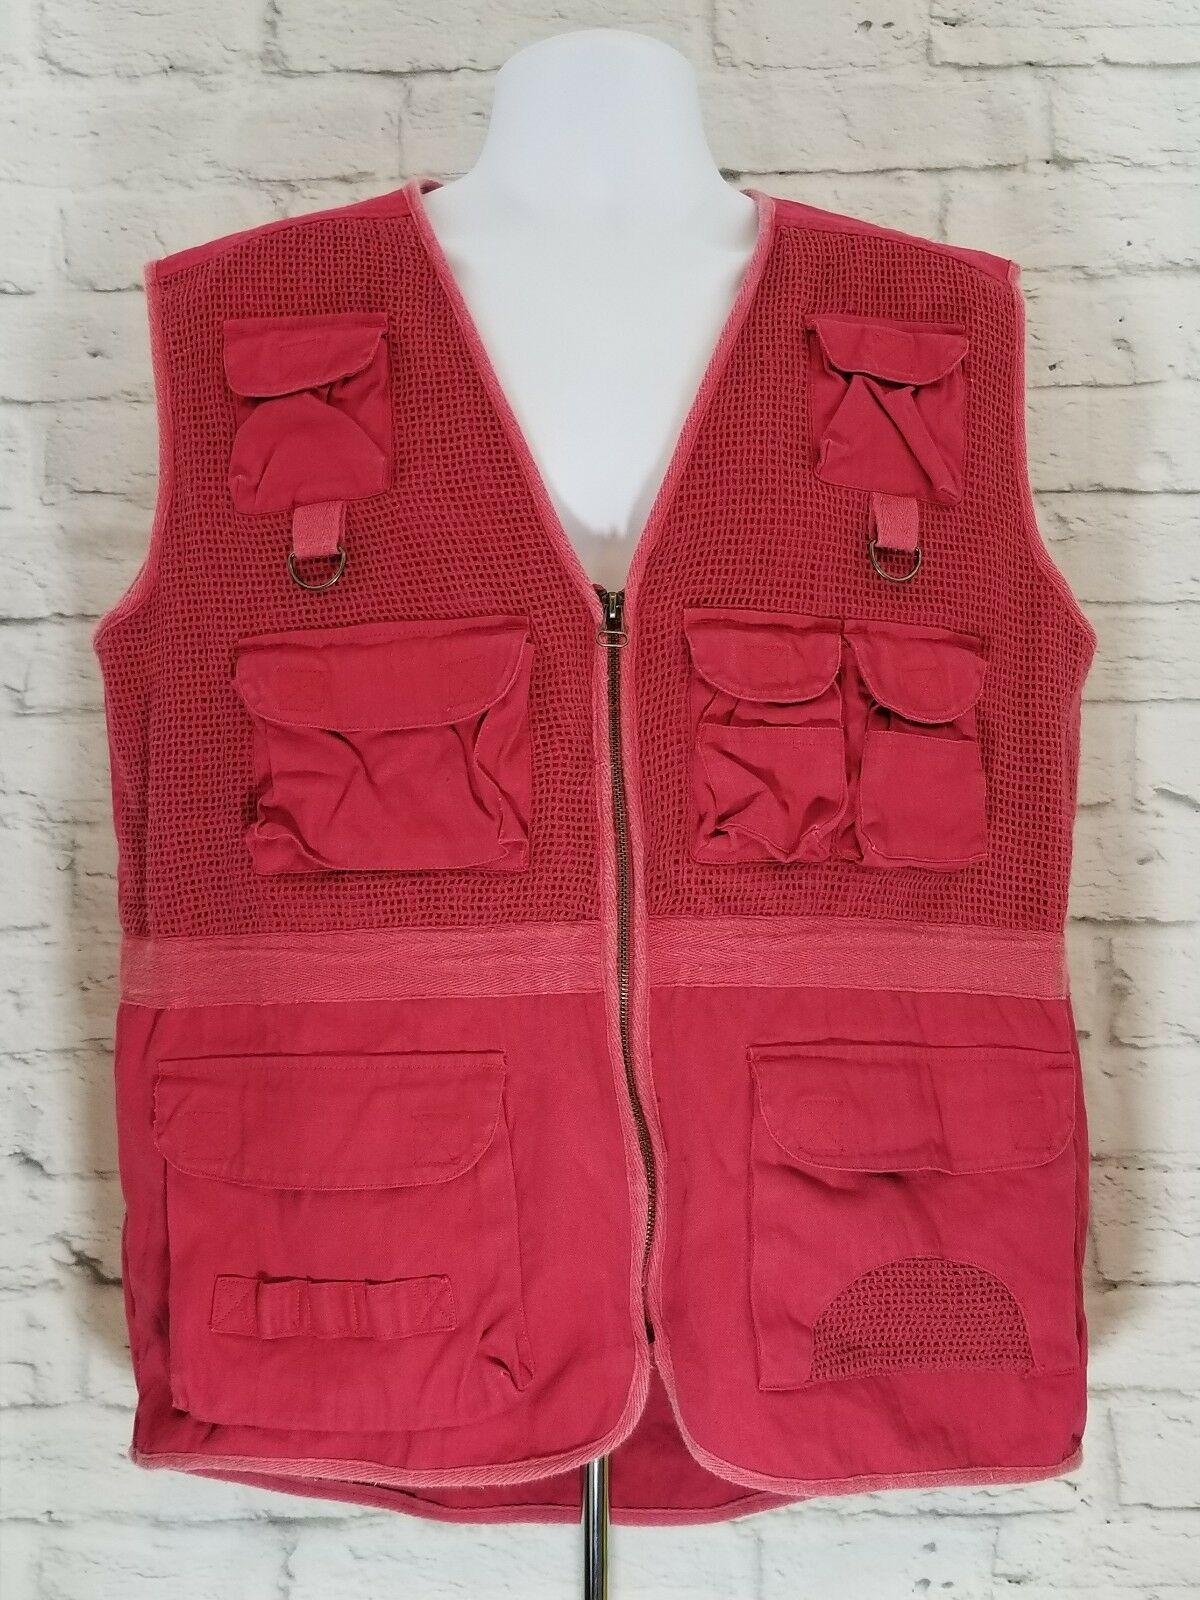 Bugle Boy Mens Fishing Vest Size Large Red Hunting Photography Hiking Camping